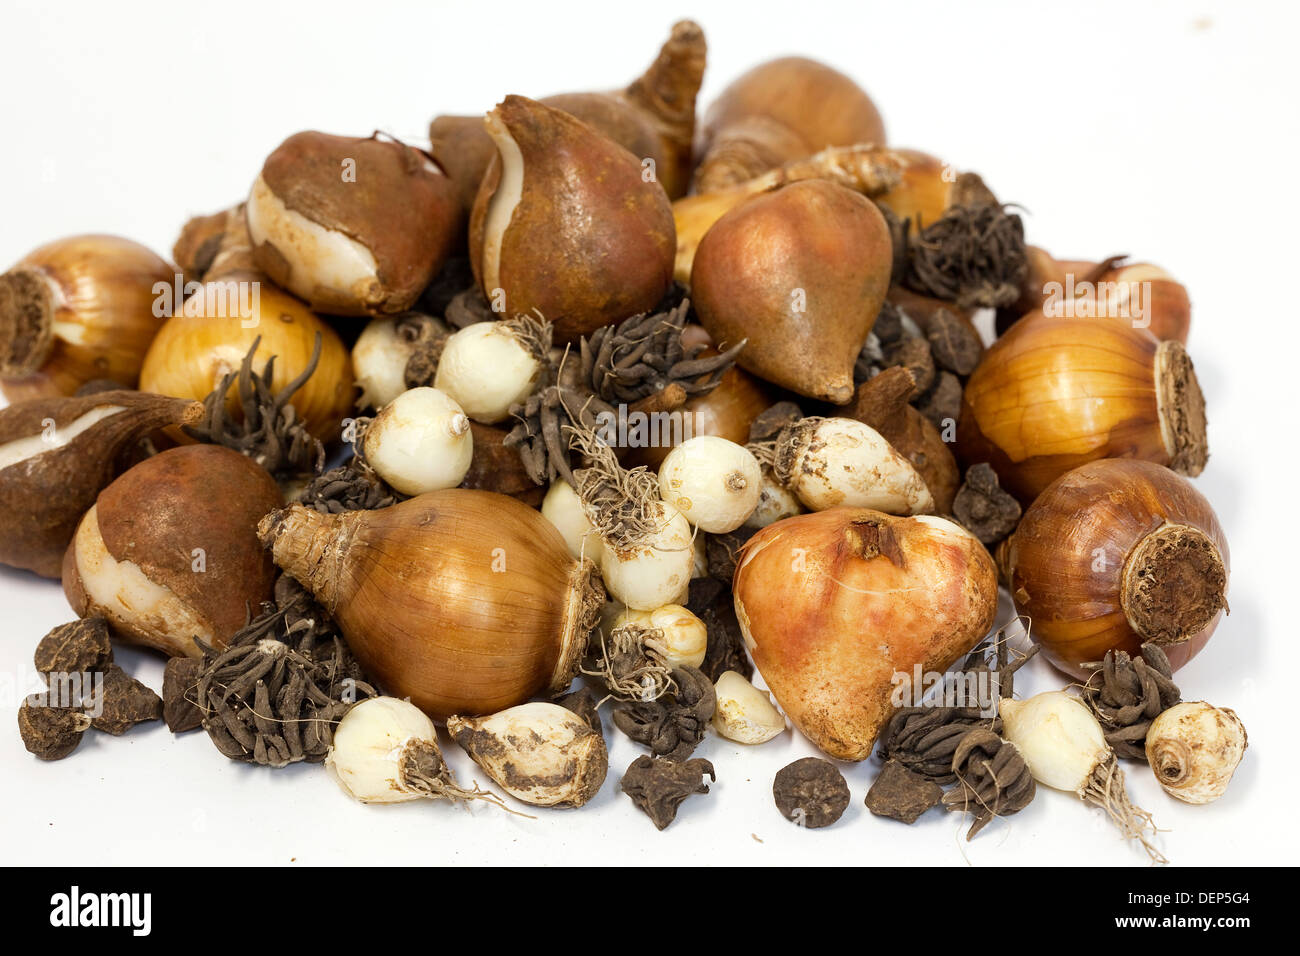 A pile of various dried bulibs for hyacinths, ranunculus, jonquils, tulips amongst others, all on a white background. Stock Photo